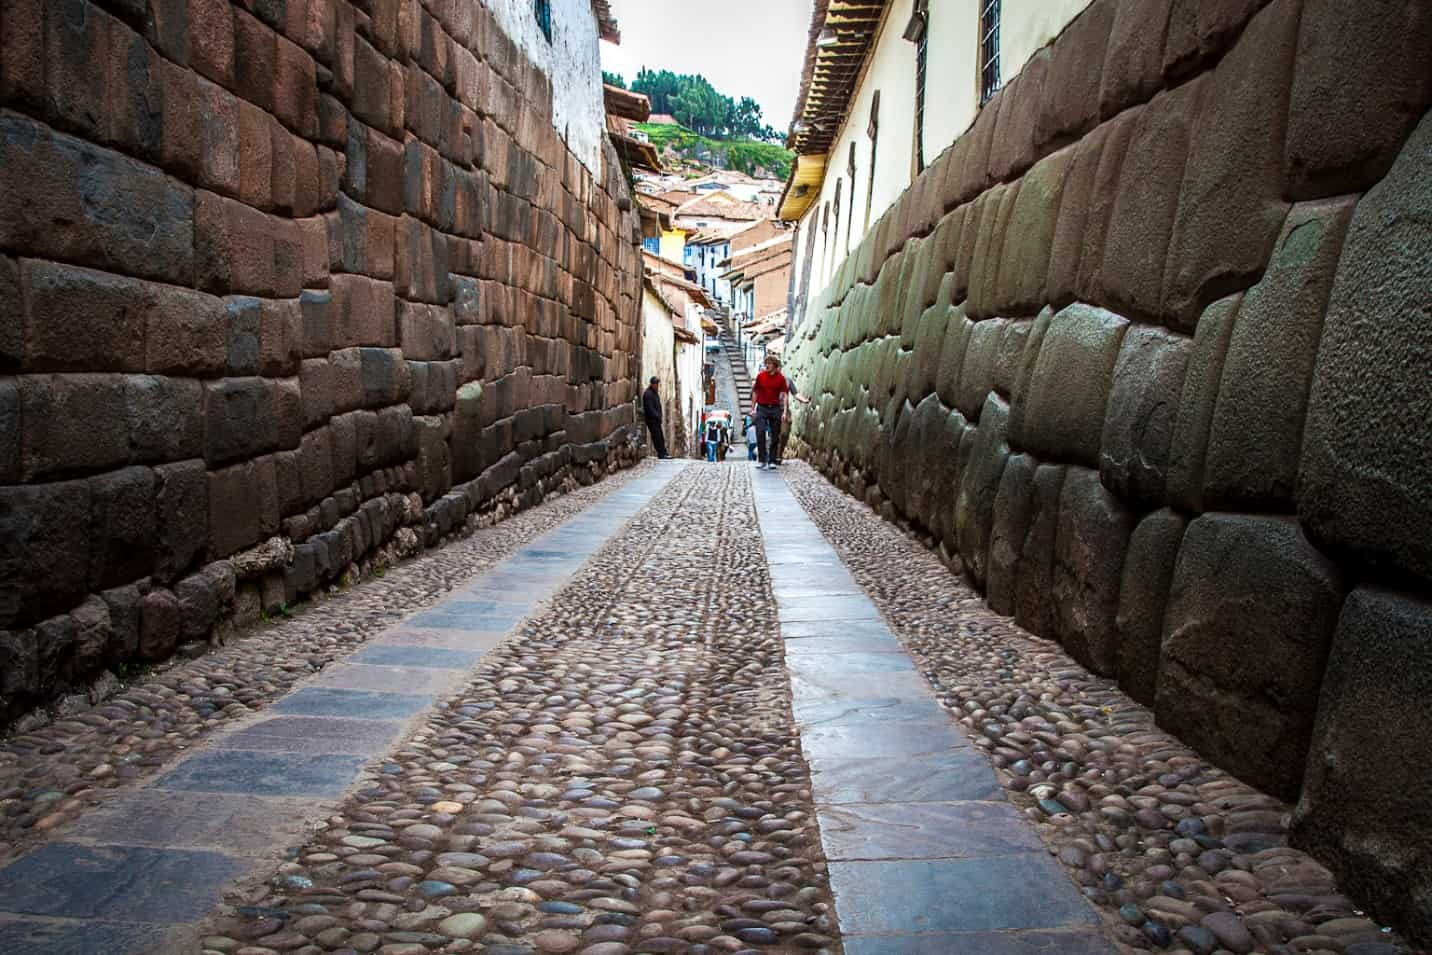 Street of ancient city